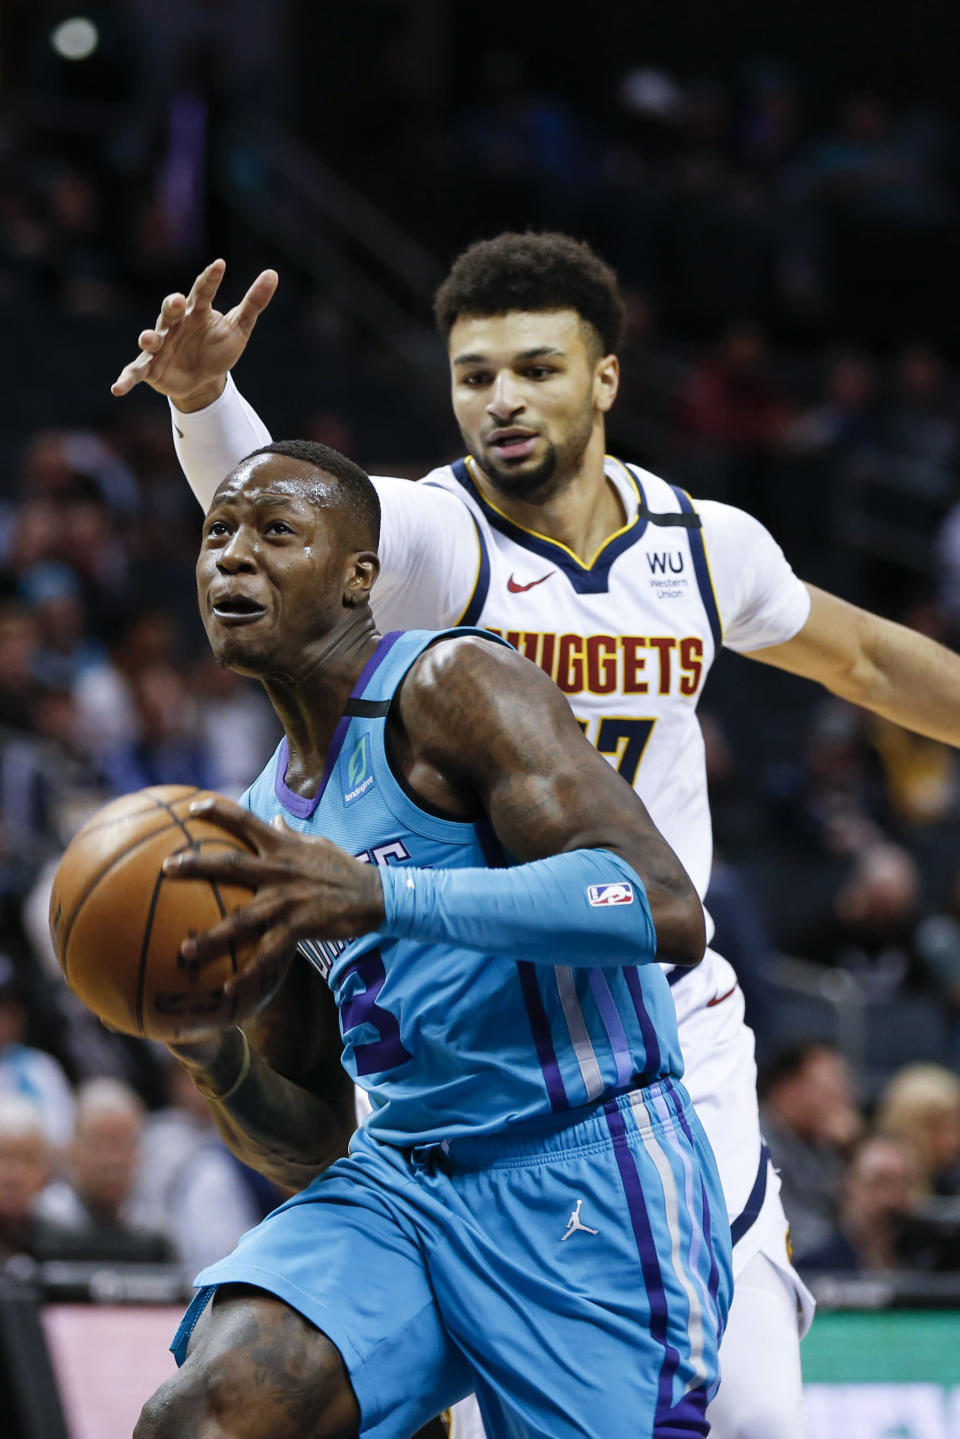 Charlotte Hornets guard Terry Rozier, left, drives to the basket ahead of Denver Nuggets guard Jamal Murray during the first half of an NBA basketball game in Charlotte, N.C., Thursday, March 5, 2020. (AP Photo/Nell Redmond)